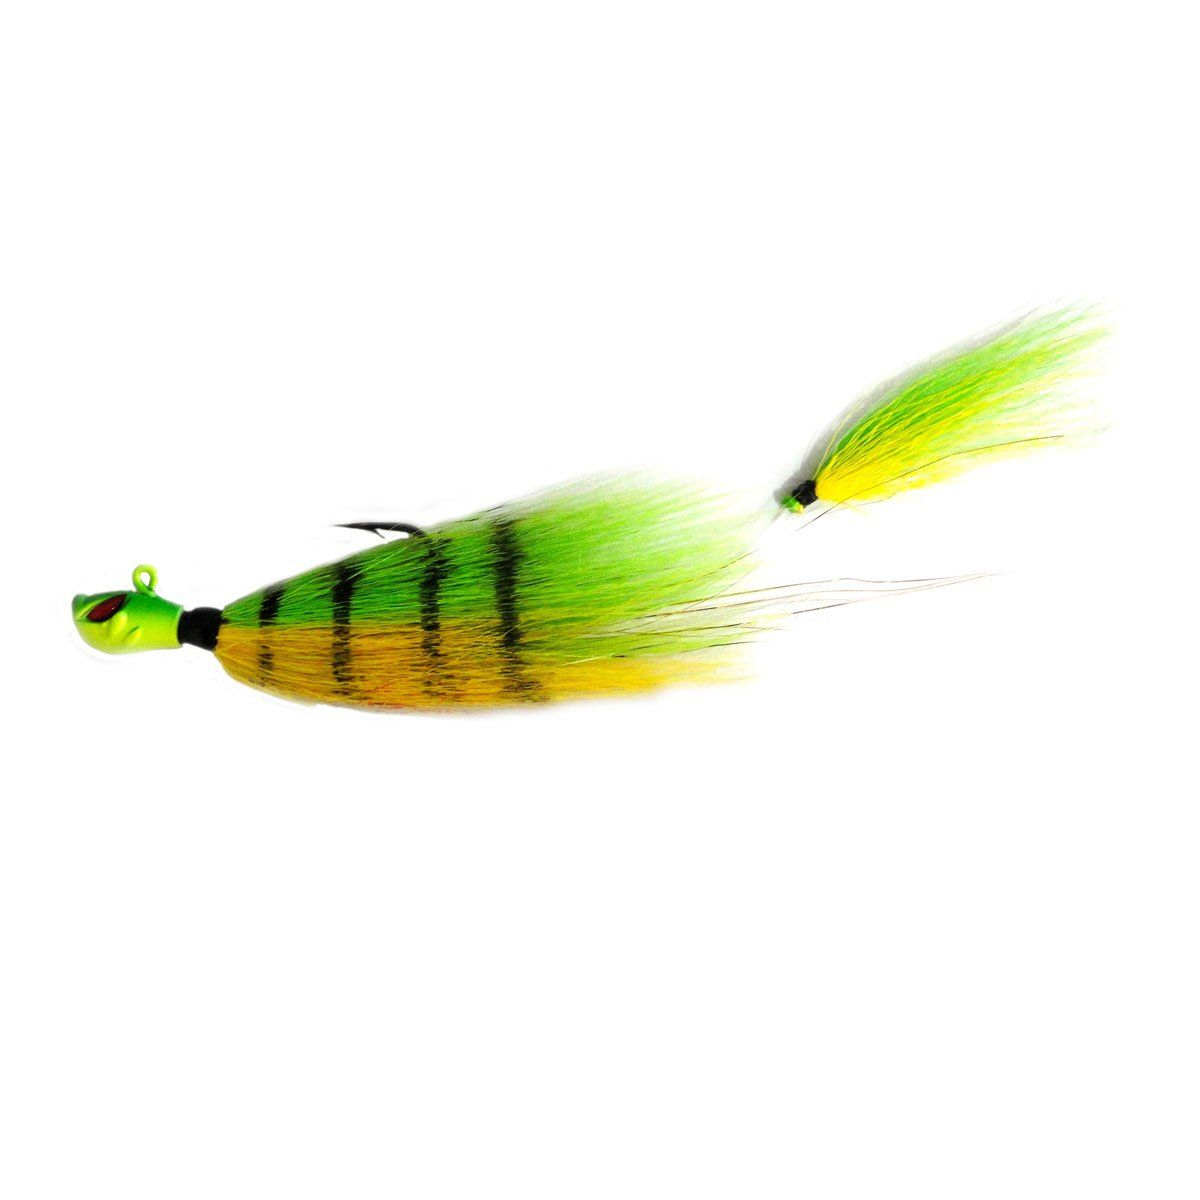 Isca Artificial Yara Jig Killer 21cm 17g